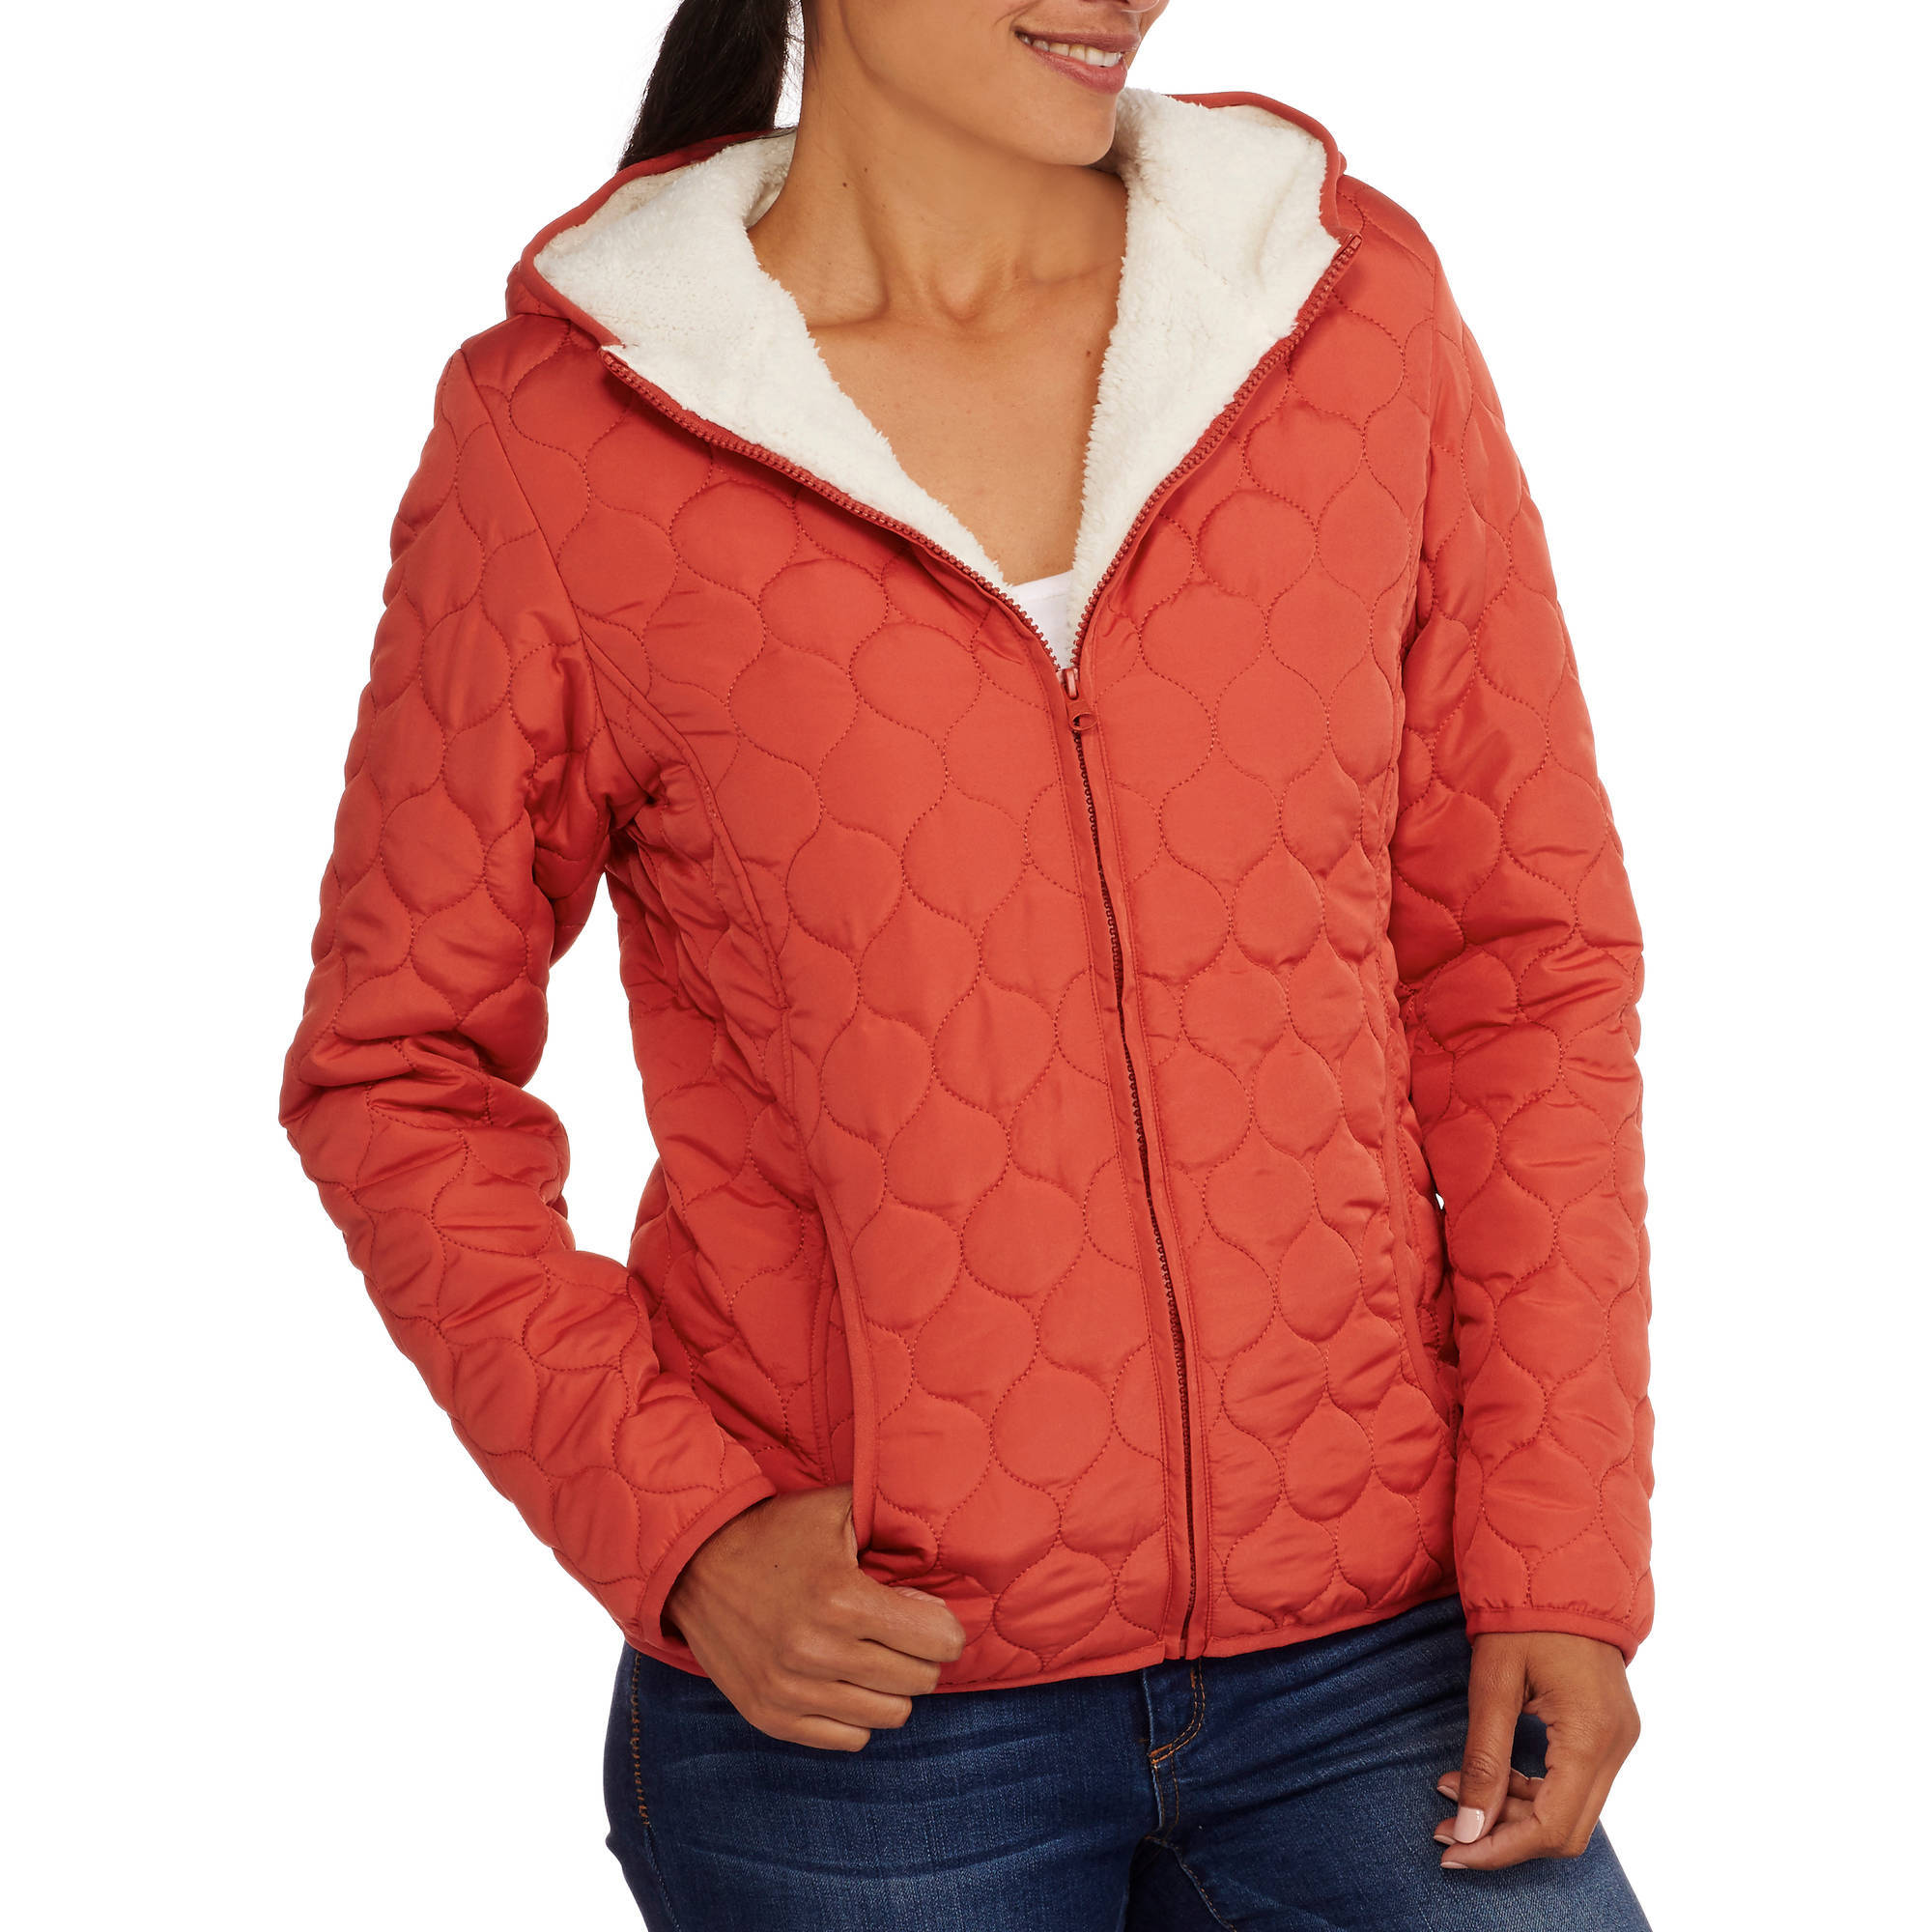 Climate Concepts Women's Hooded Quilted Jacket with Cozy Sherpa Lining